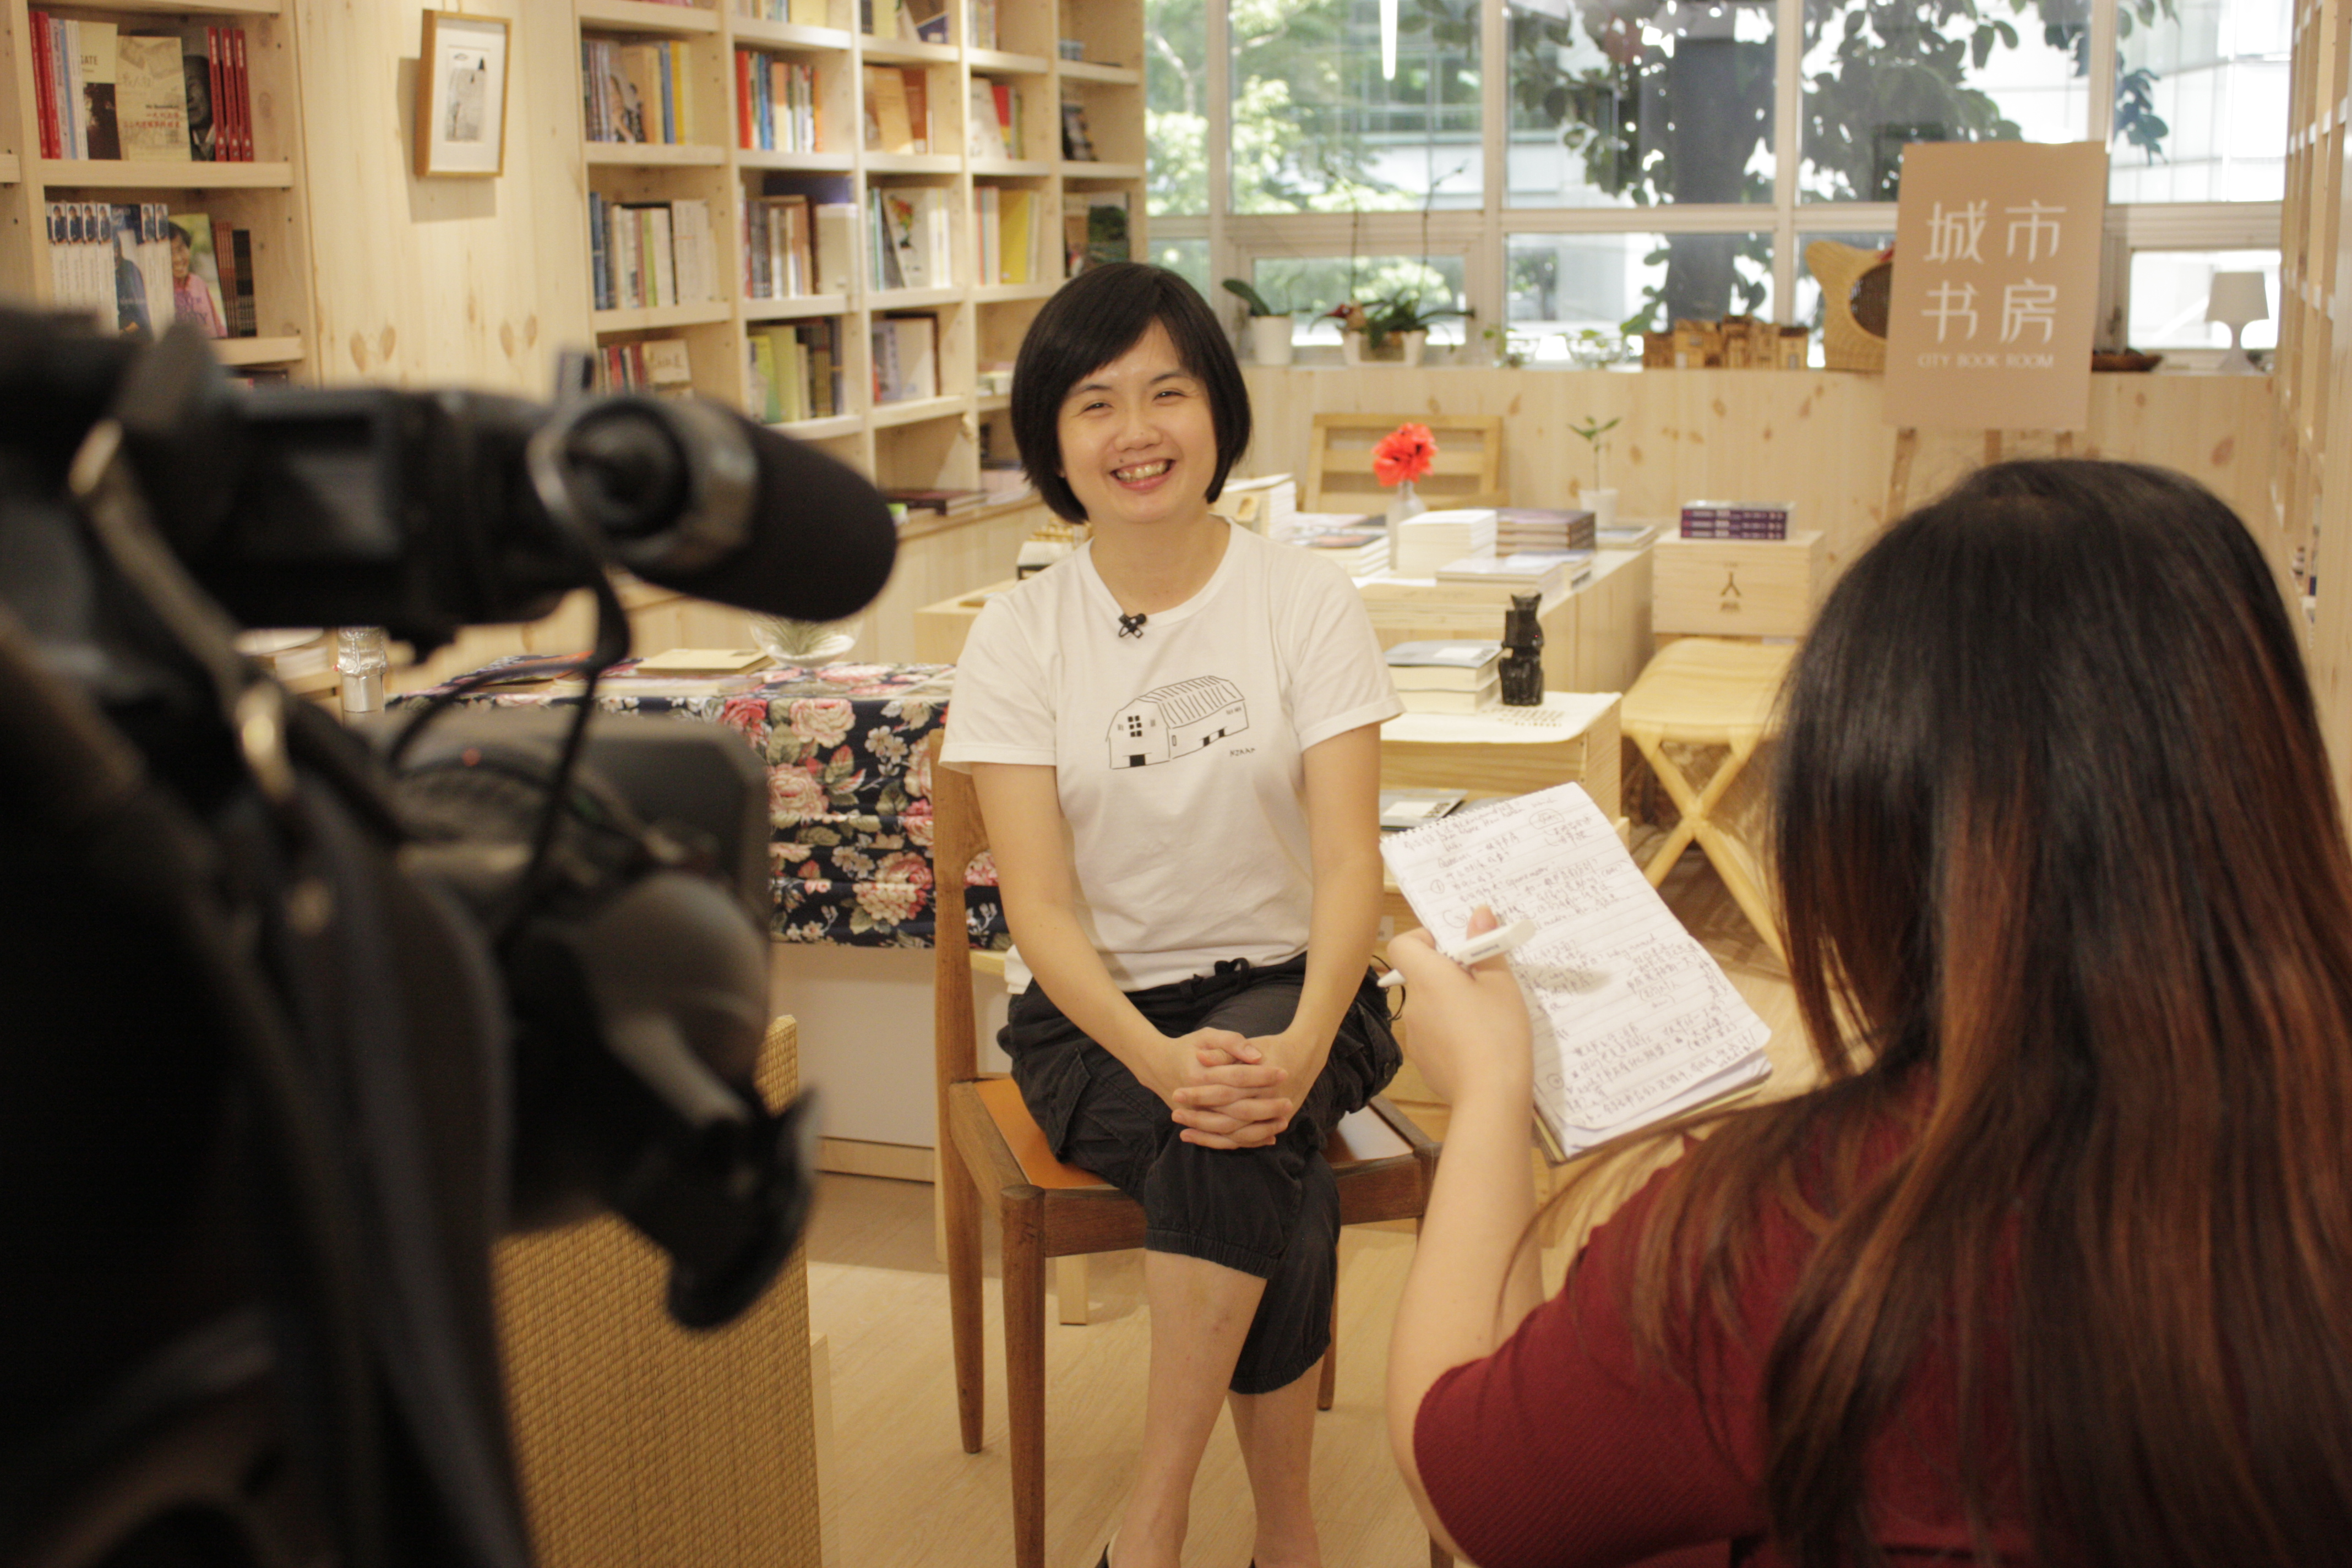 Founder of City Book Room, Tan Waln Ching